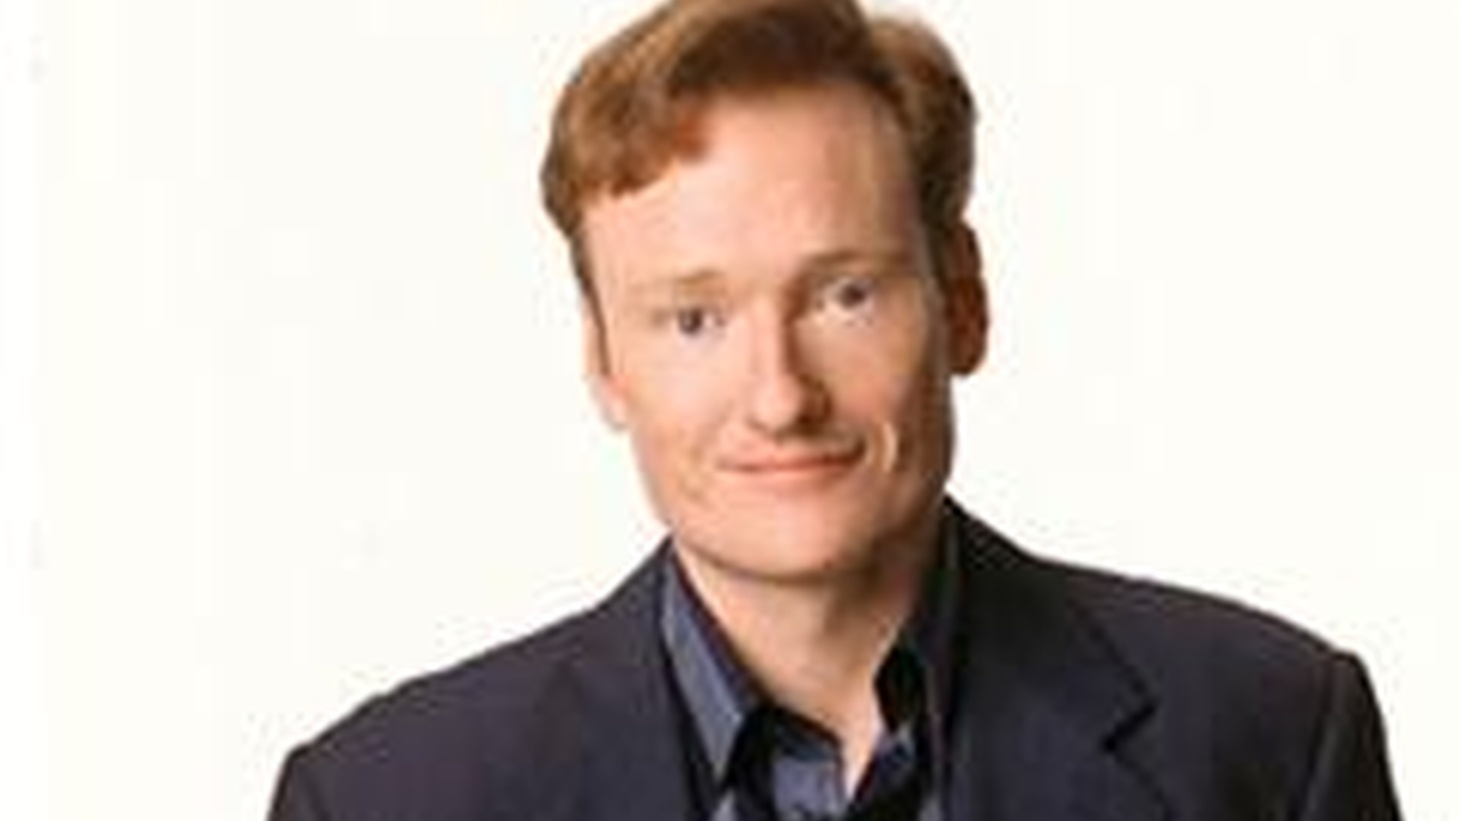 Talk show host Conan O'Brien admits he always wanted to be a DJ. He chats with DJ Jason Bentley about...